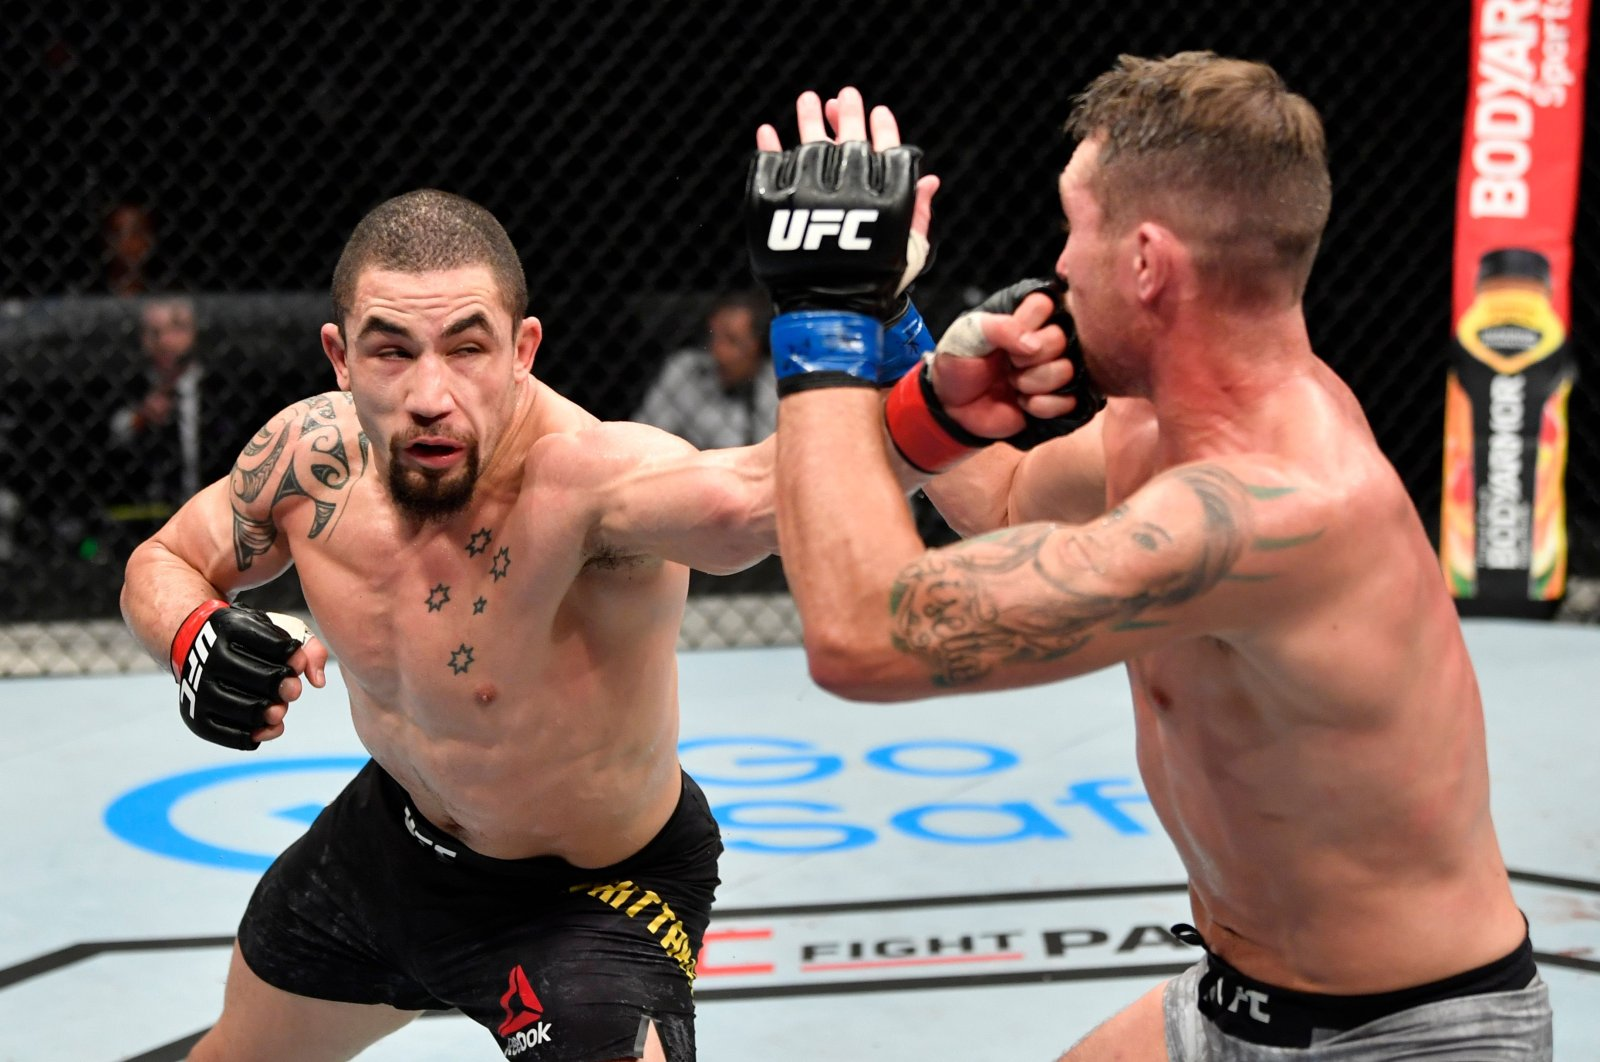 Robert Whittaker punches Darren Till in their middleweight championship fight during the UFC 251 event at UFC Fight Island on Abu Dhabi's Yas Island, UAE, July 26, 2020. (AFP Photo)